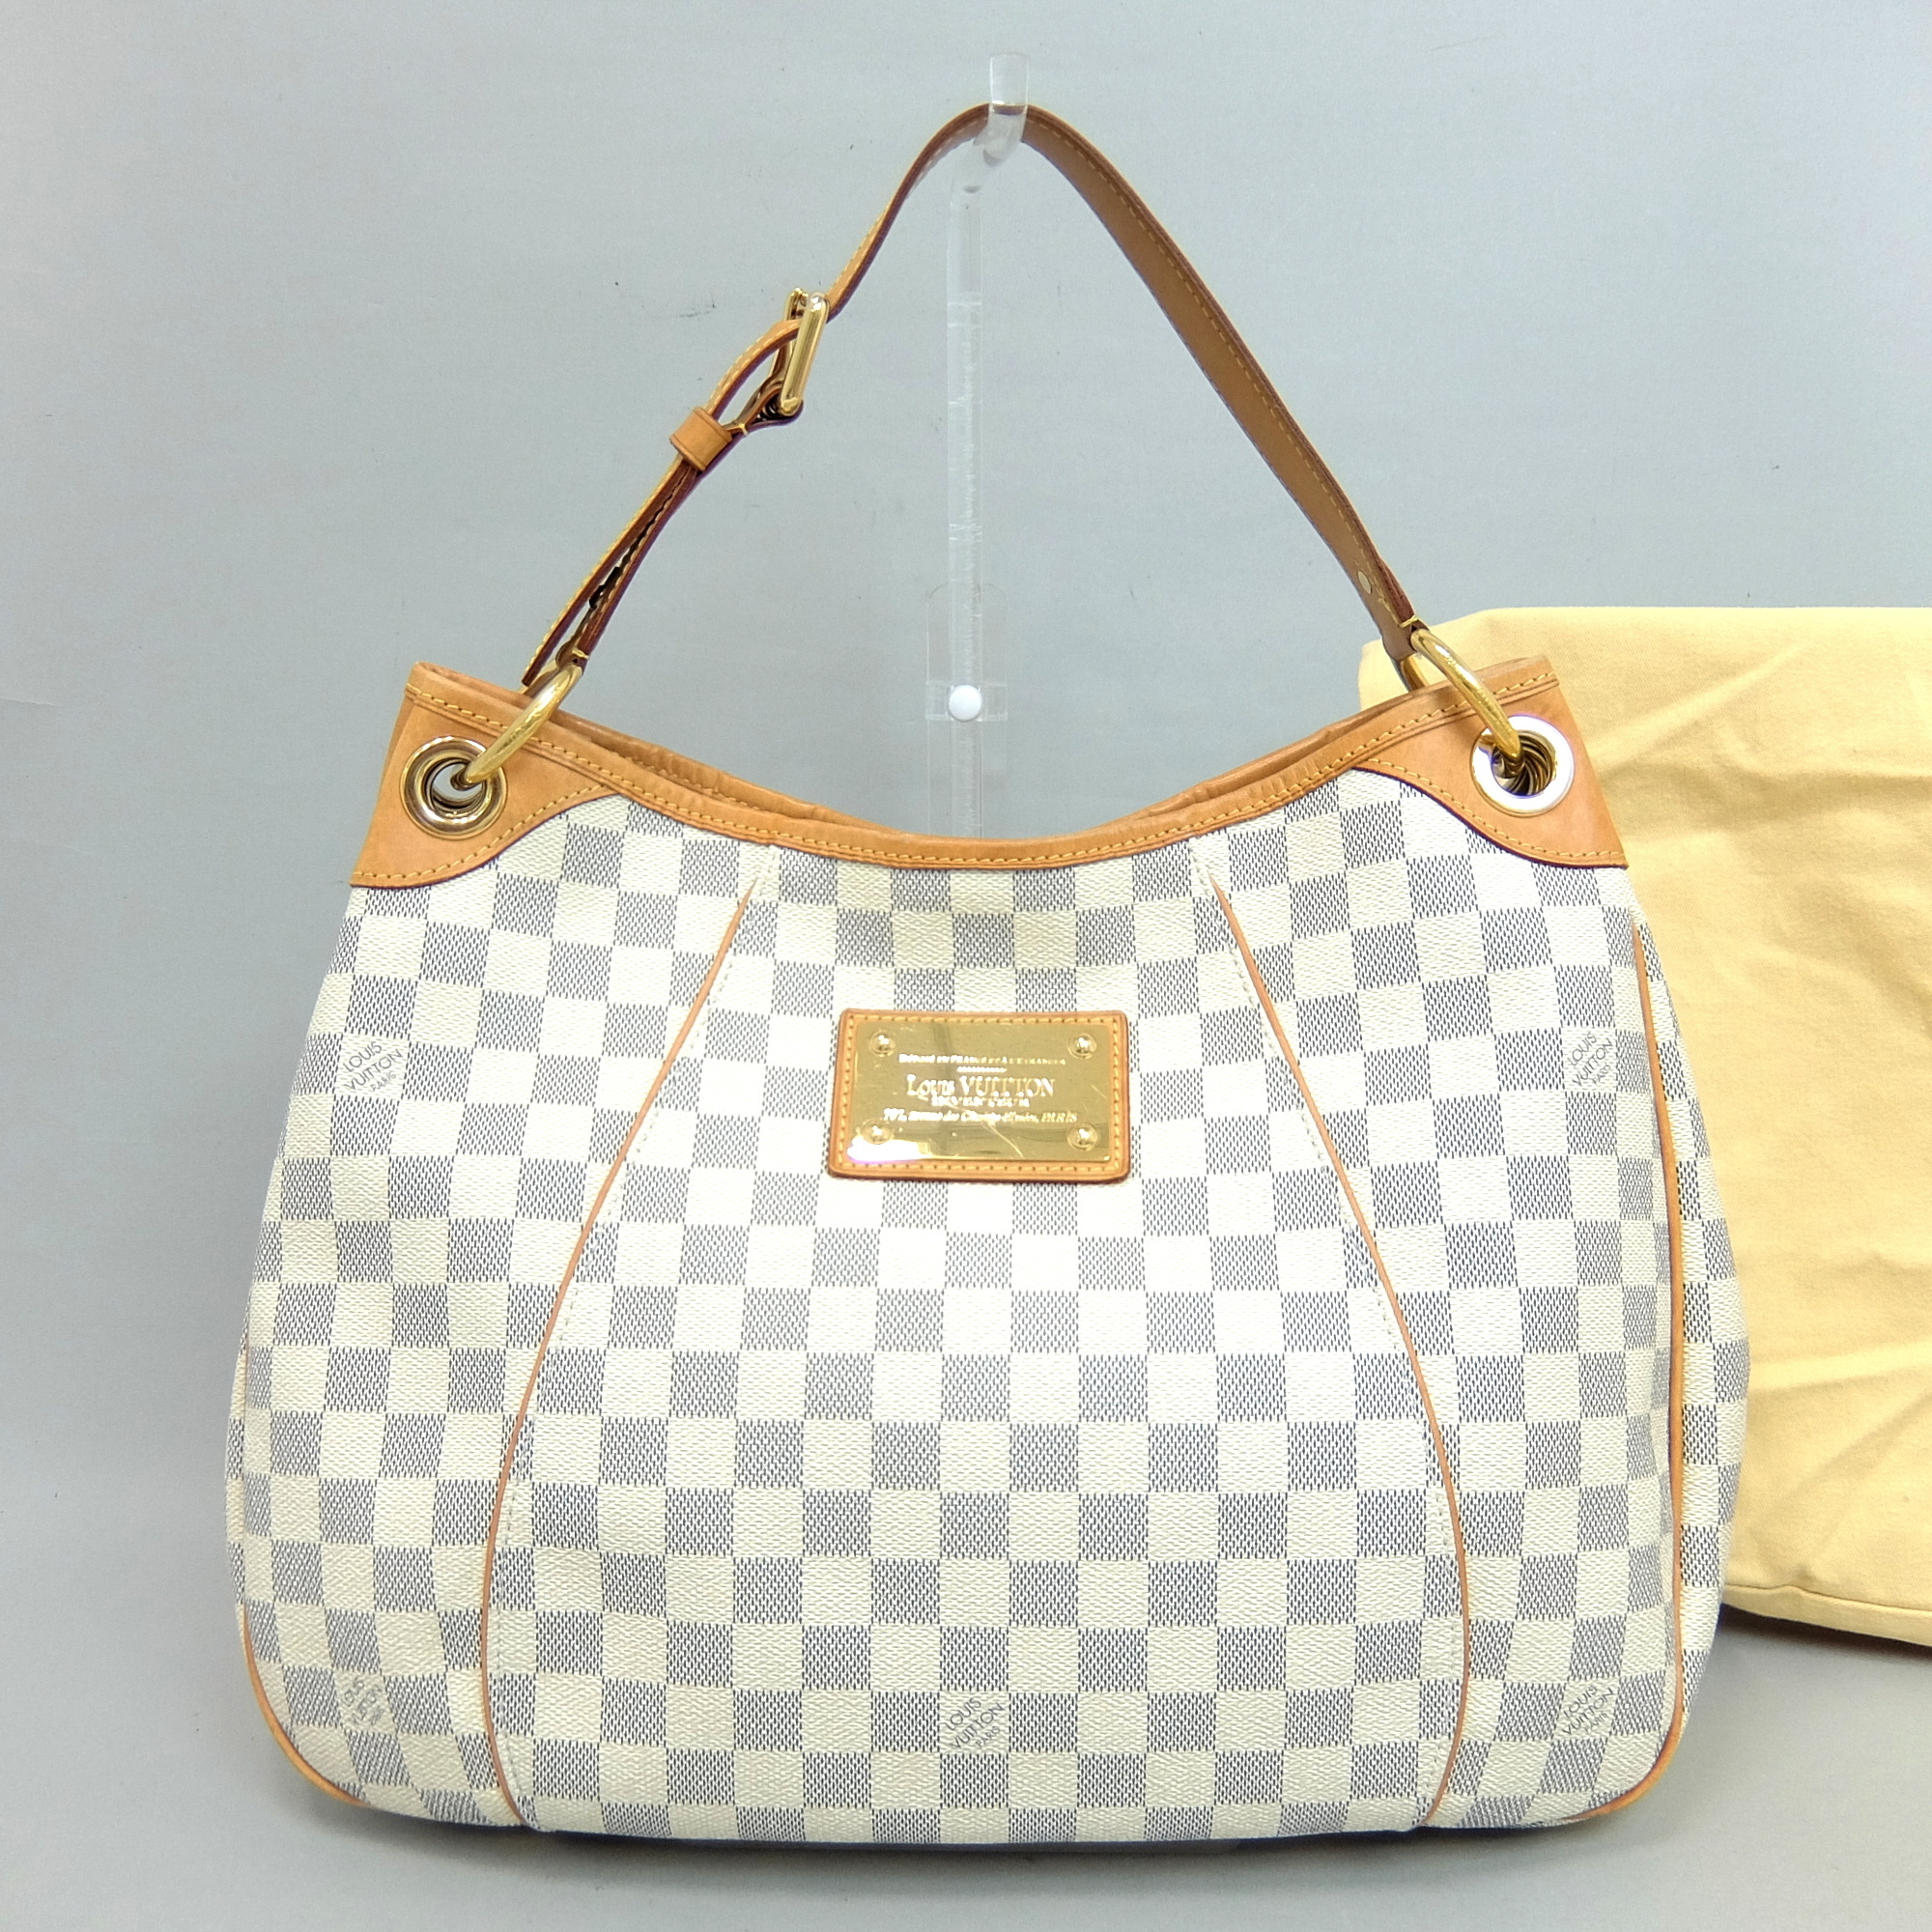 Auth Louis Vuitton Damier Azur Galliera PM Women s Handbag 00446ce7a9a1f